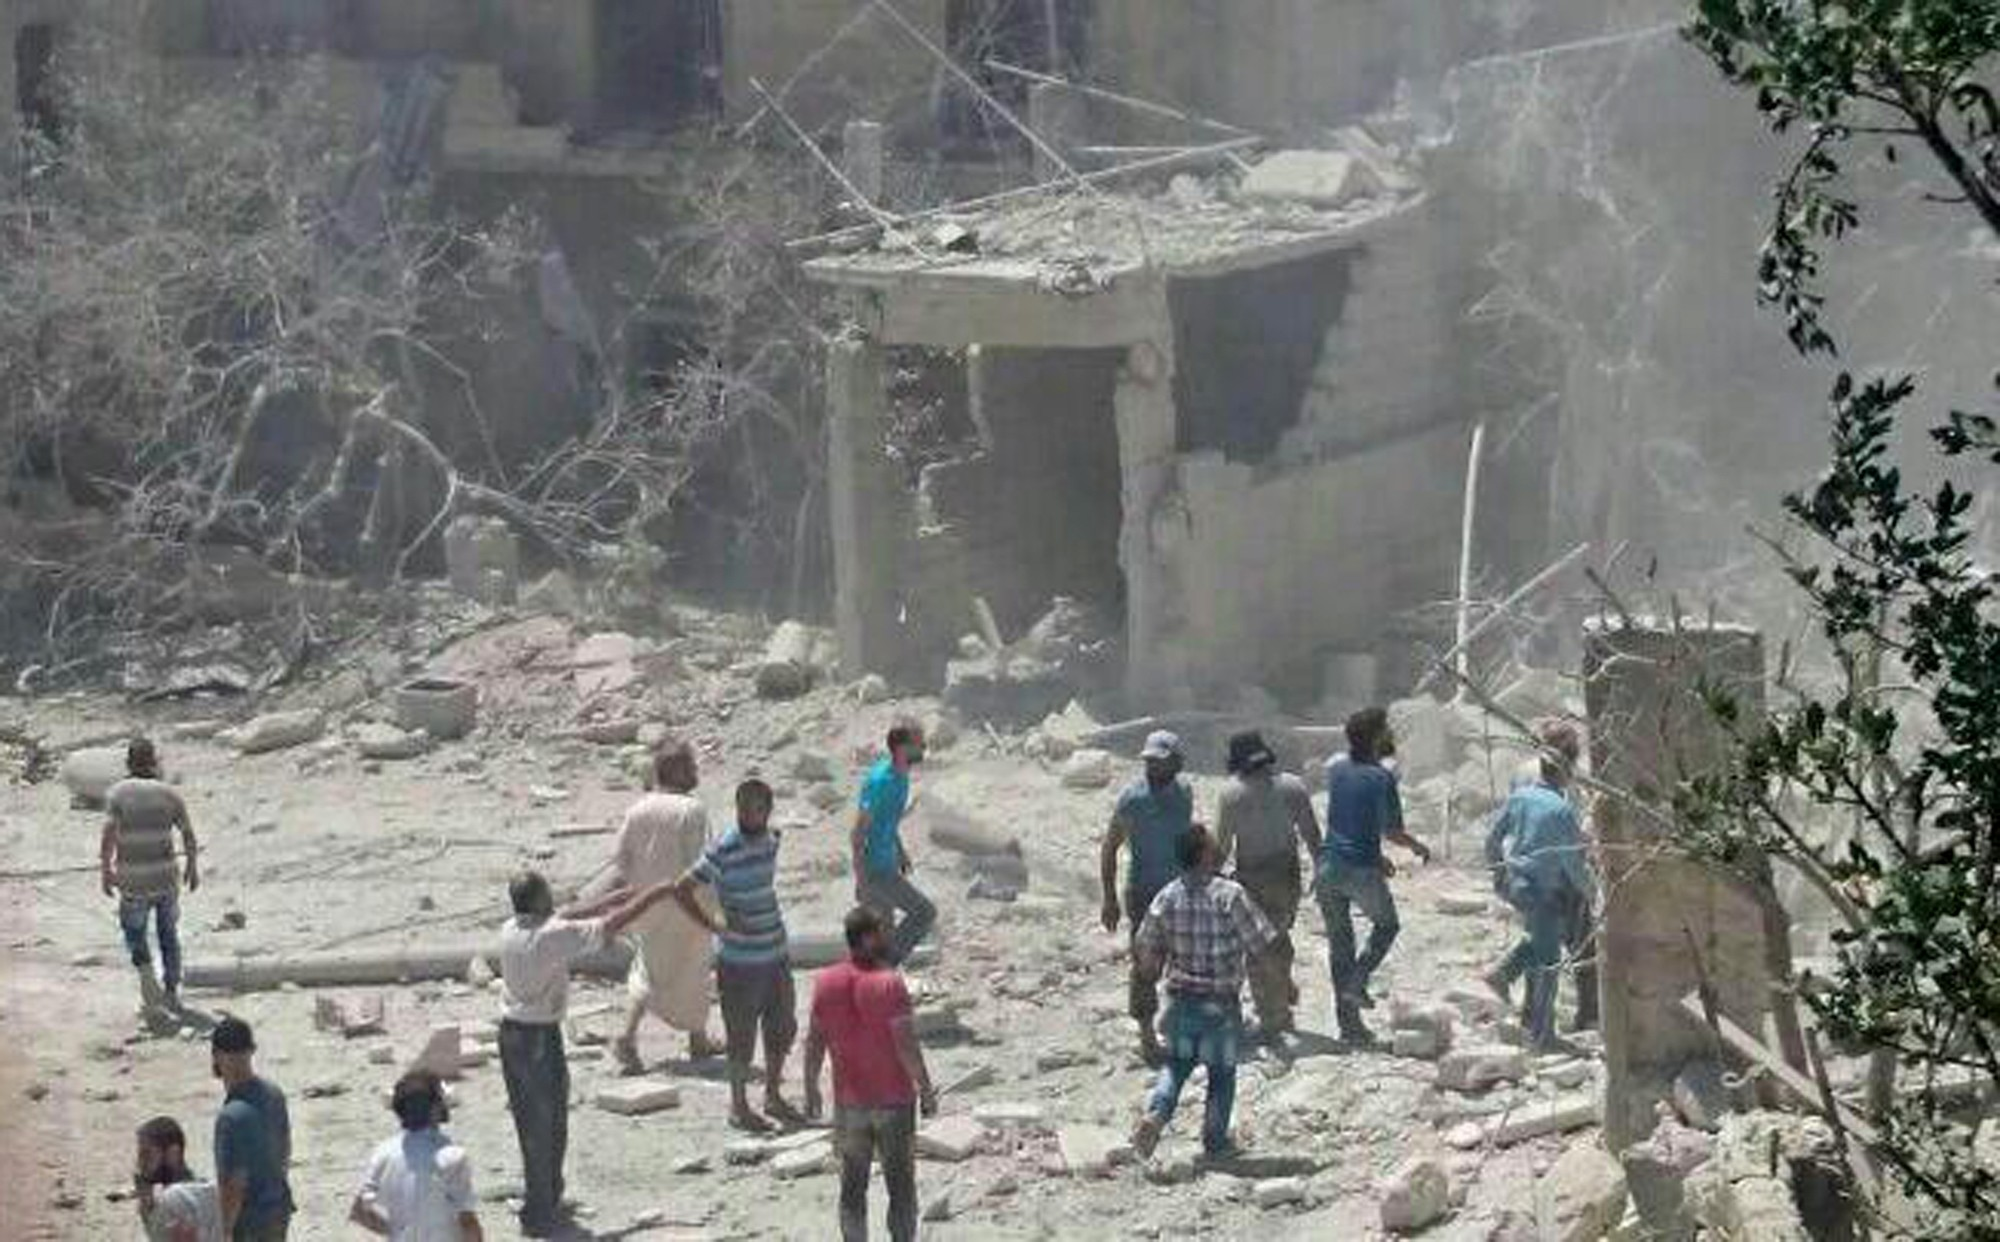 This image released by Save The Children shows a maternity hospital it supports in an opposition-held Idlib in northern Syria after it was bombed. (AP Photo)